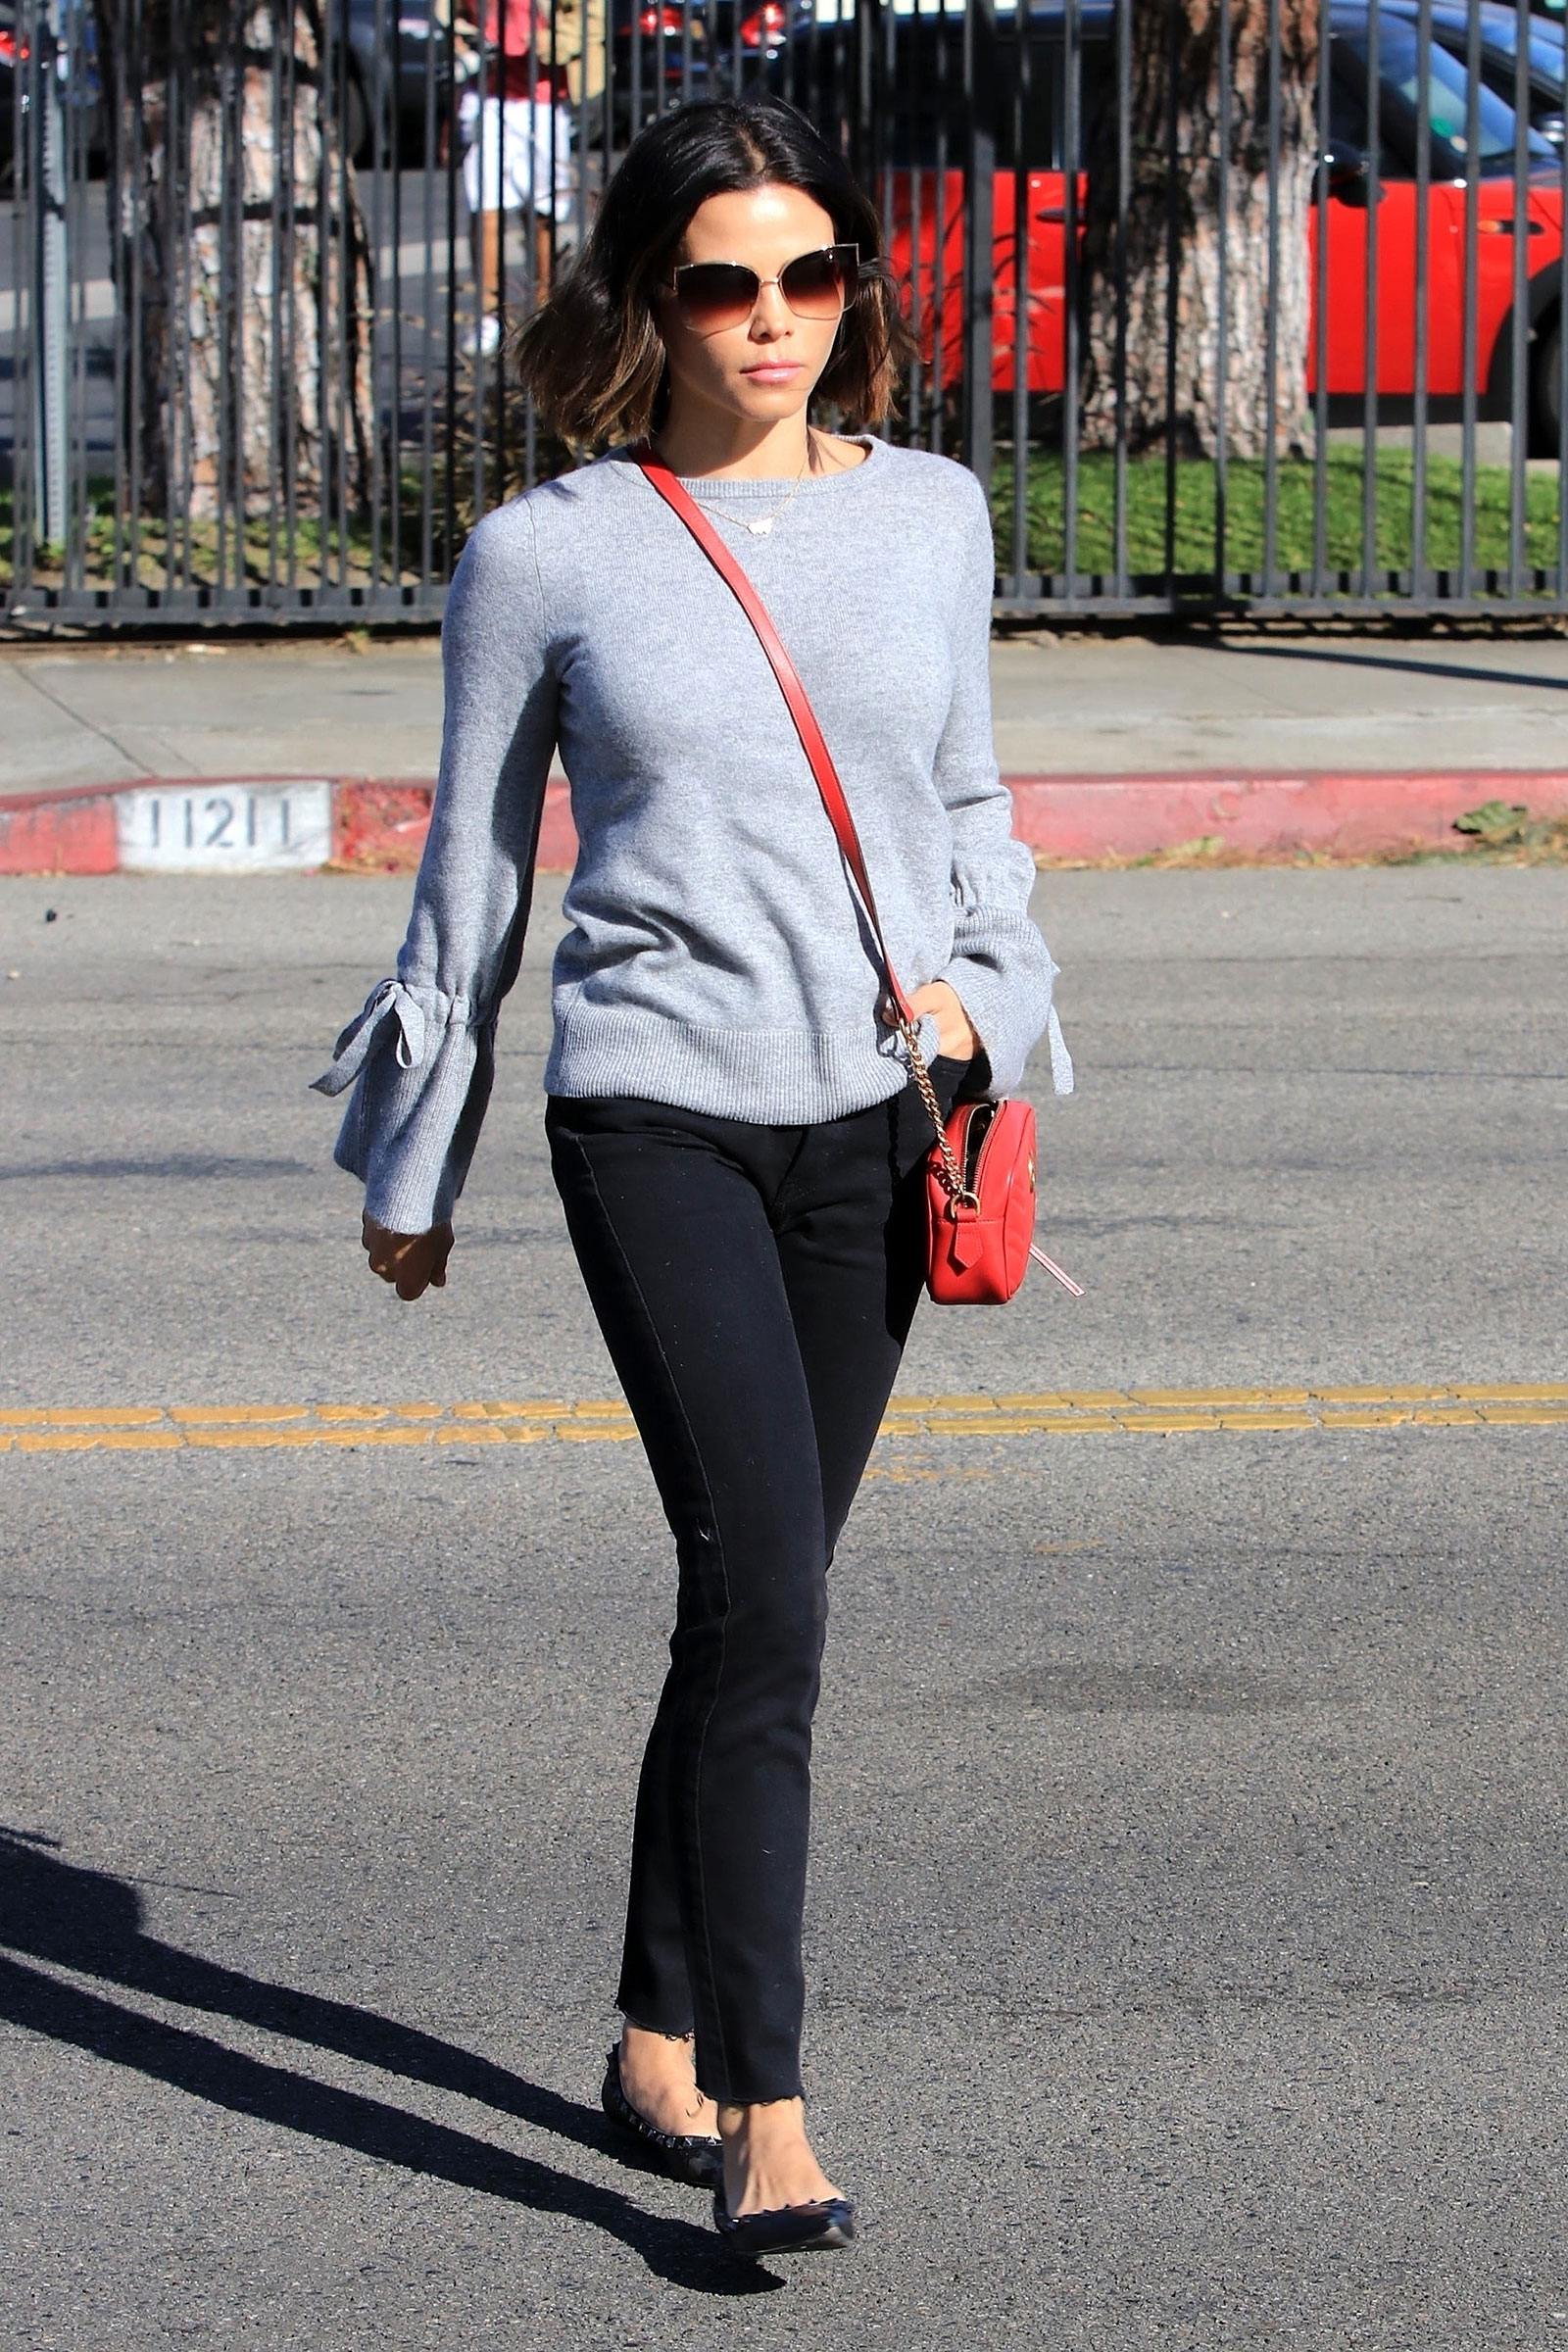 Jenna Dewan's tie-sleeve sweater, black pants and red bag look for less